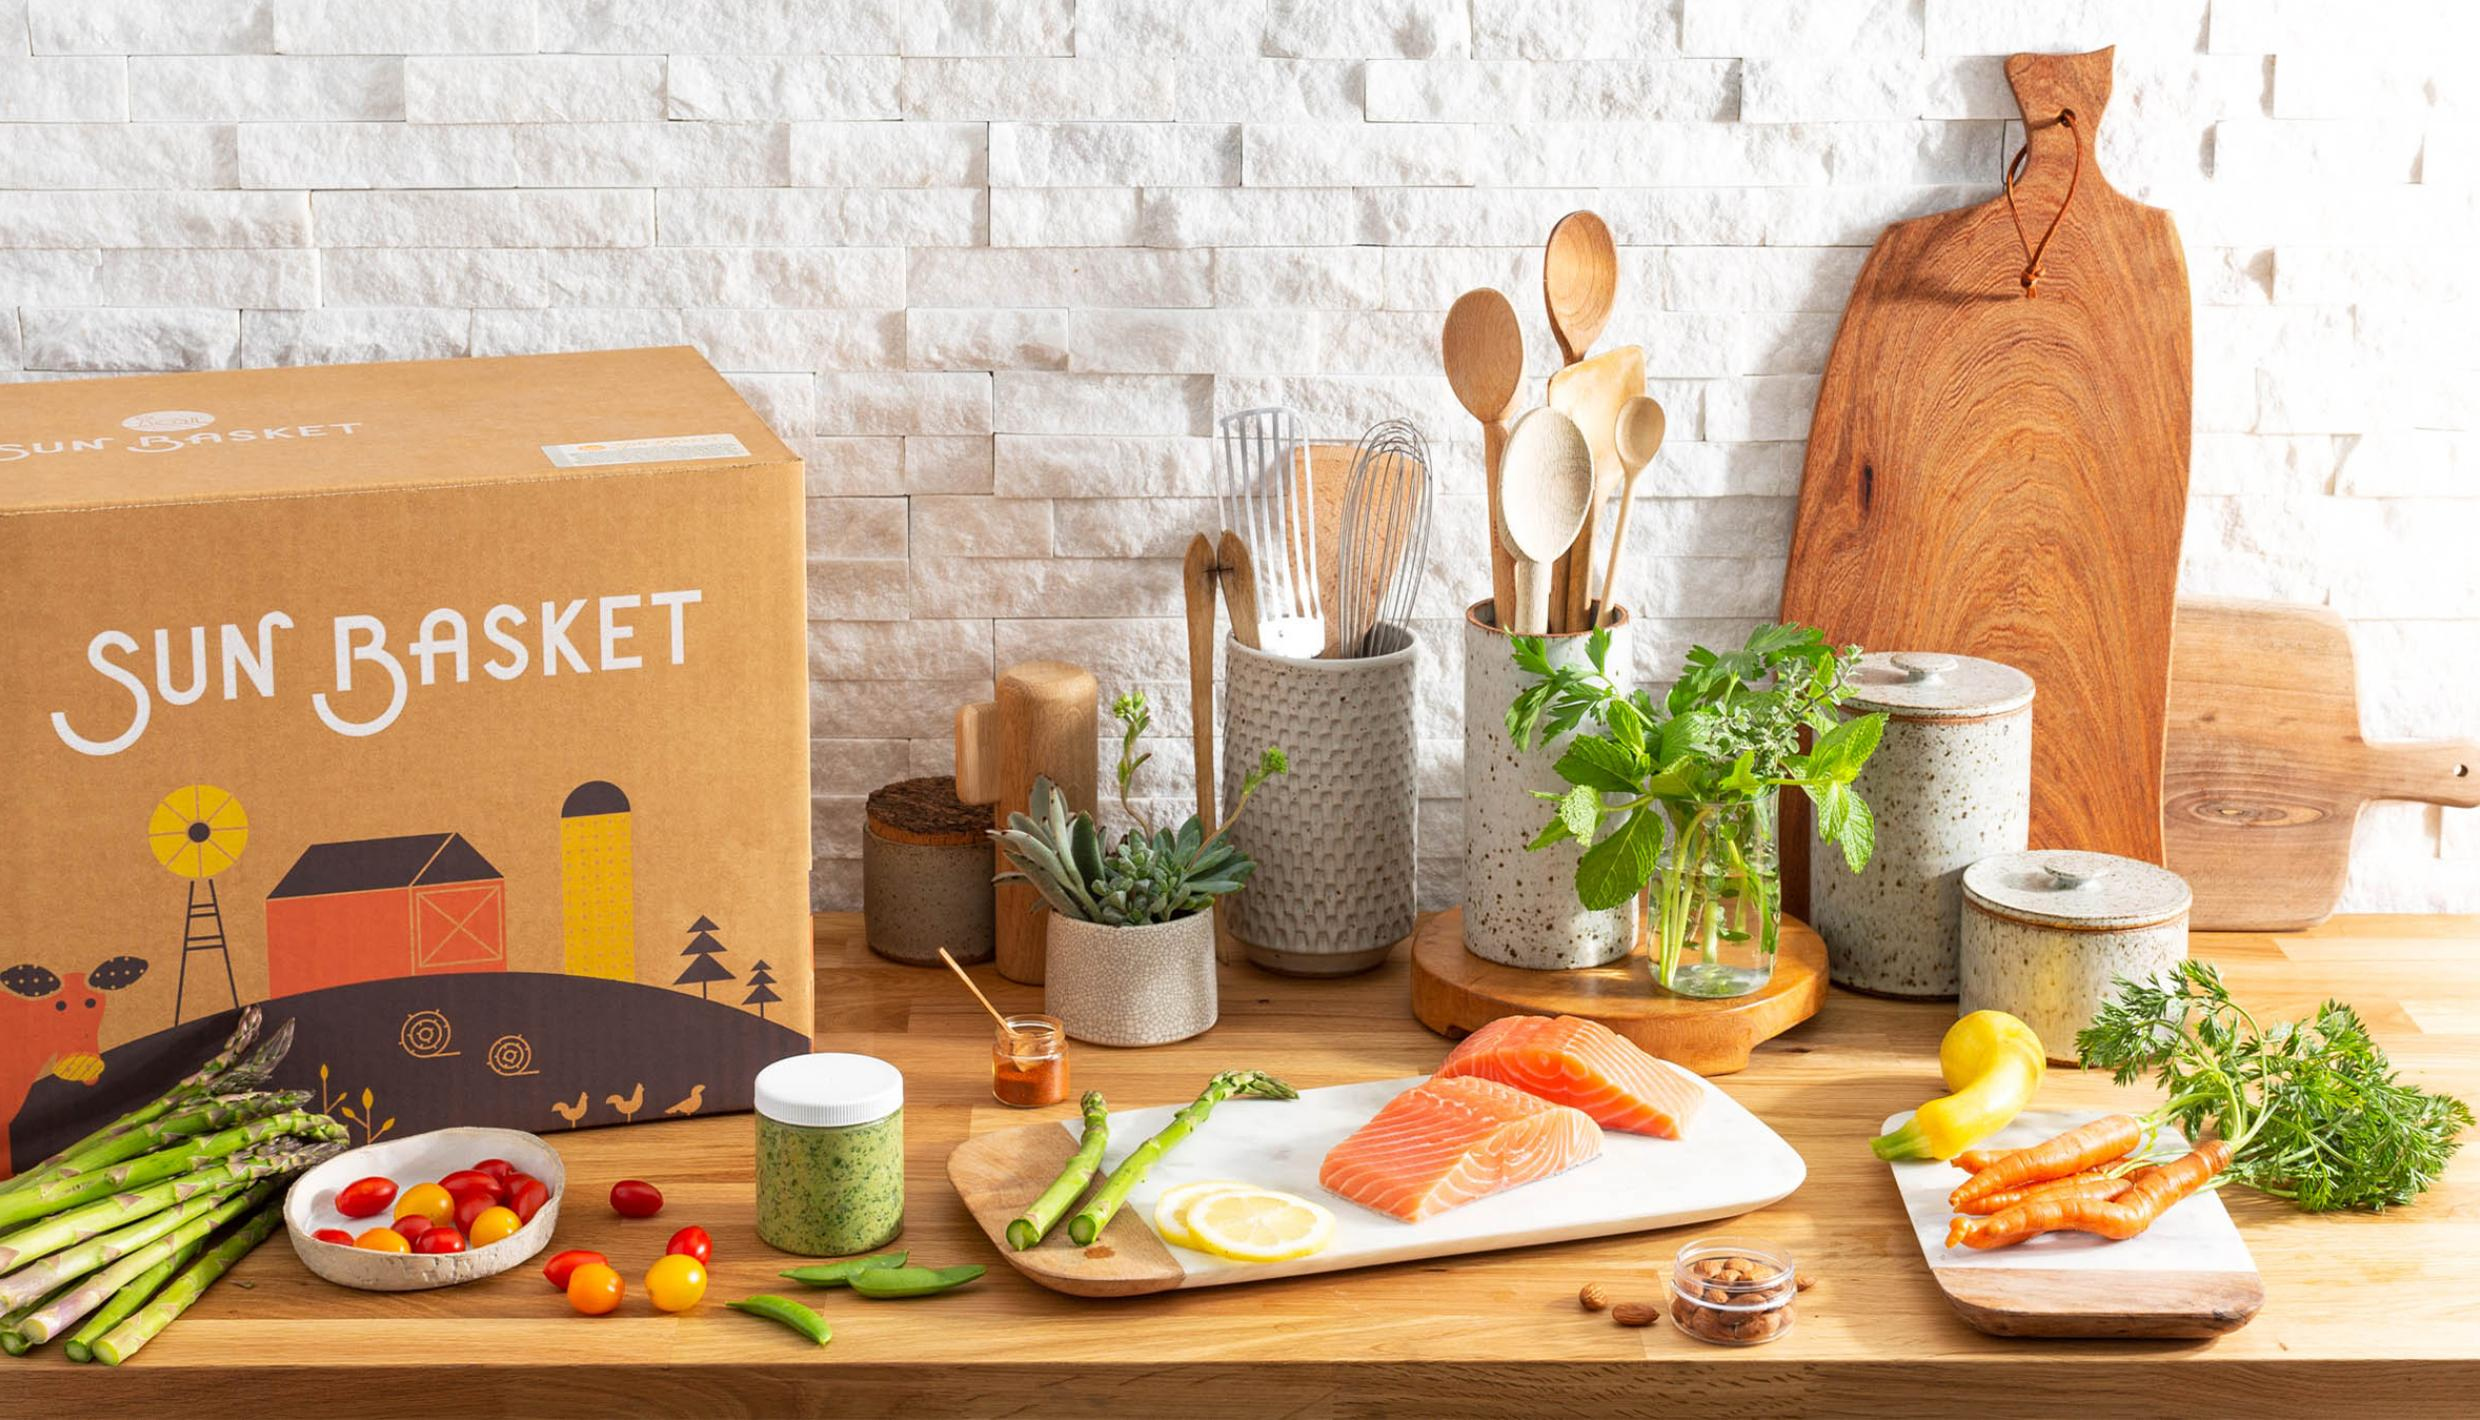 Sun Basket Meal Plan Delivery Company-1